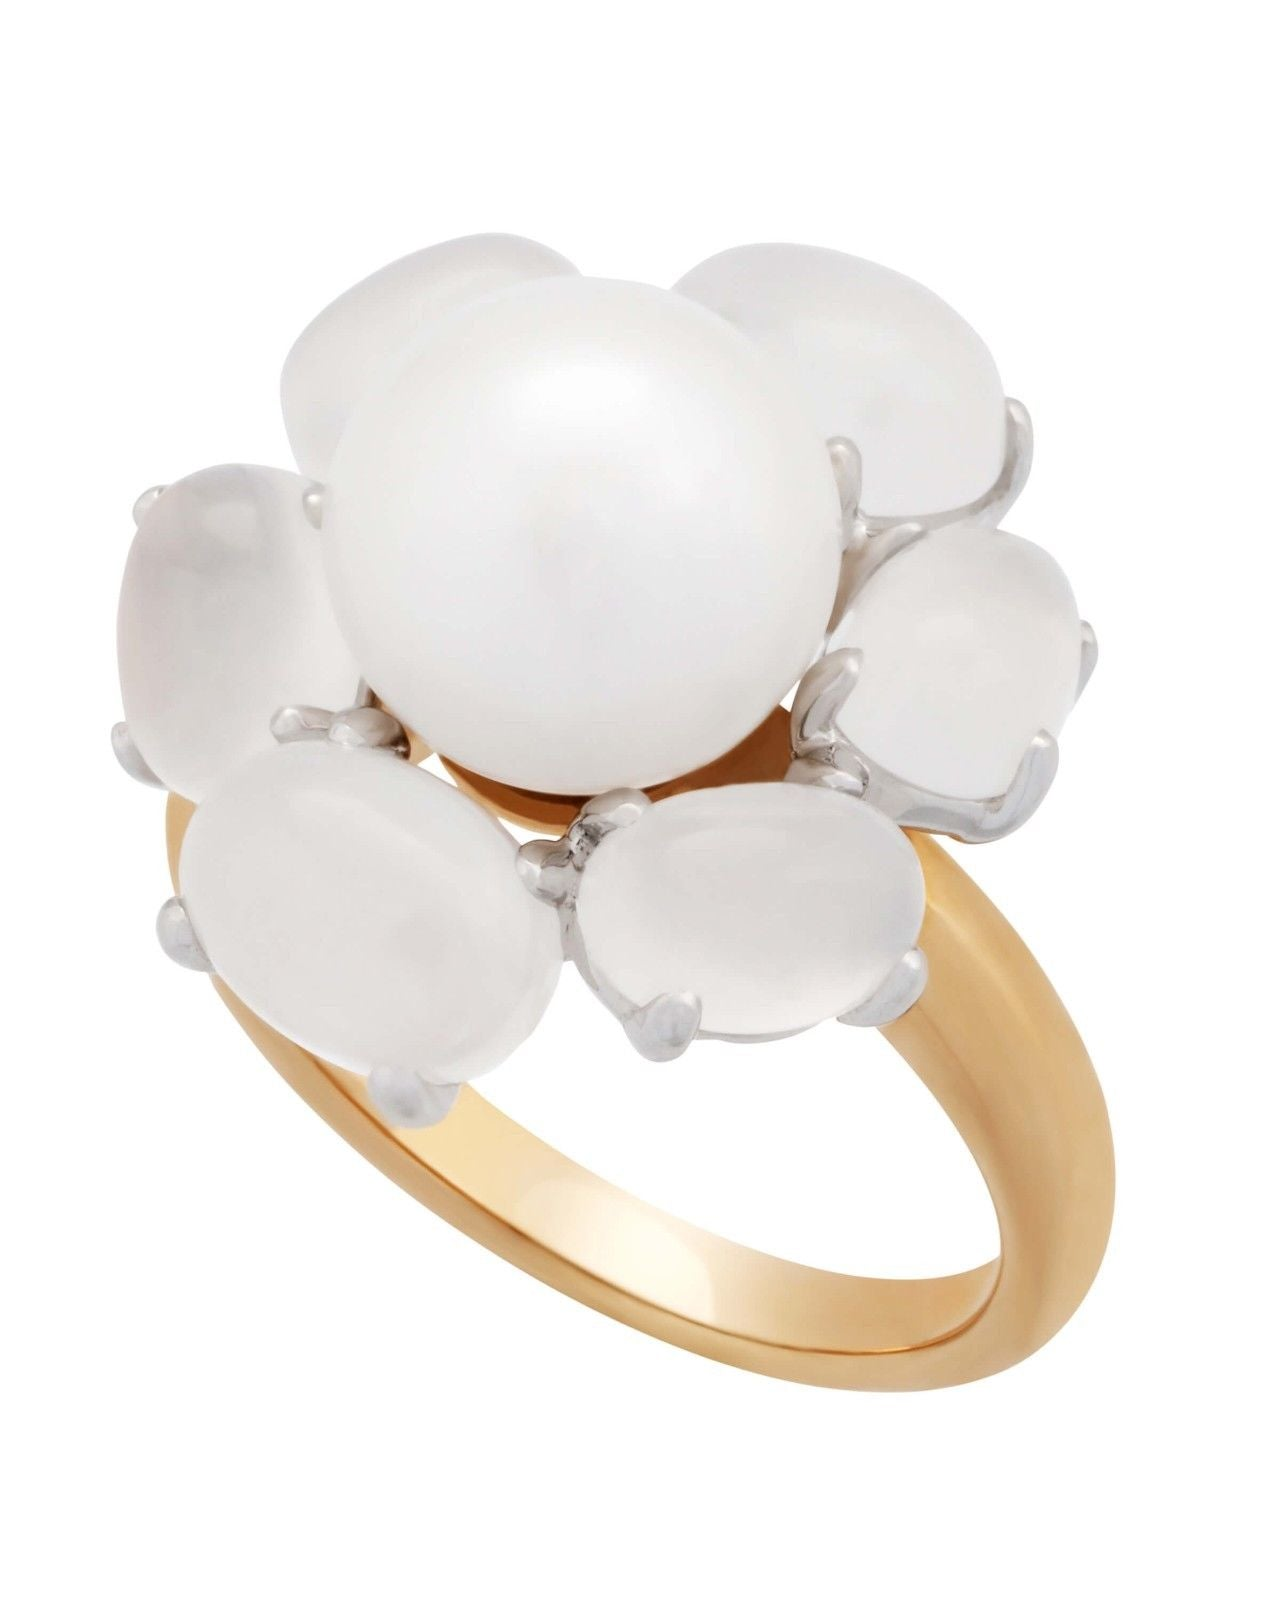 Mimi Milano Ring In 18K Rose Gold, Quartz White Freshwater Pearl A308C1QL